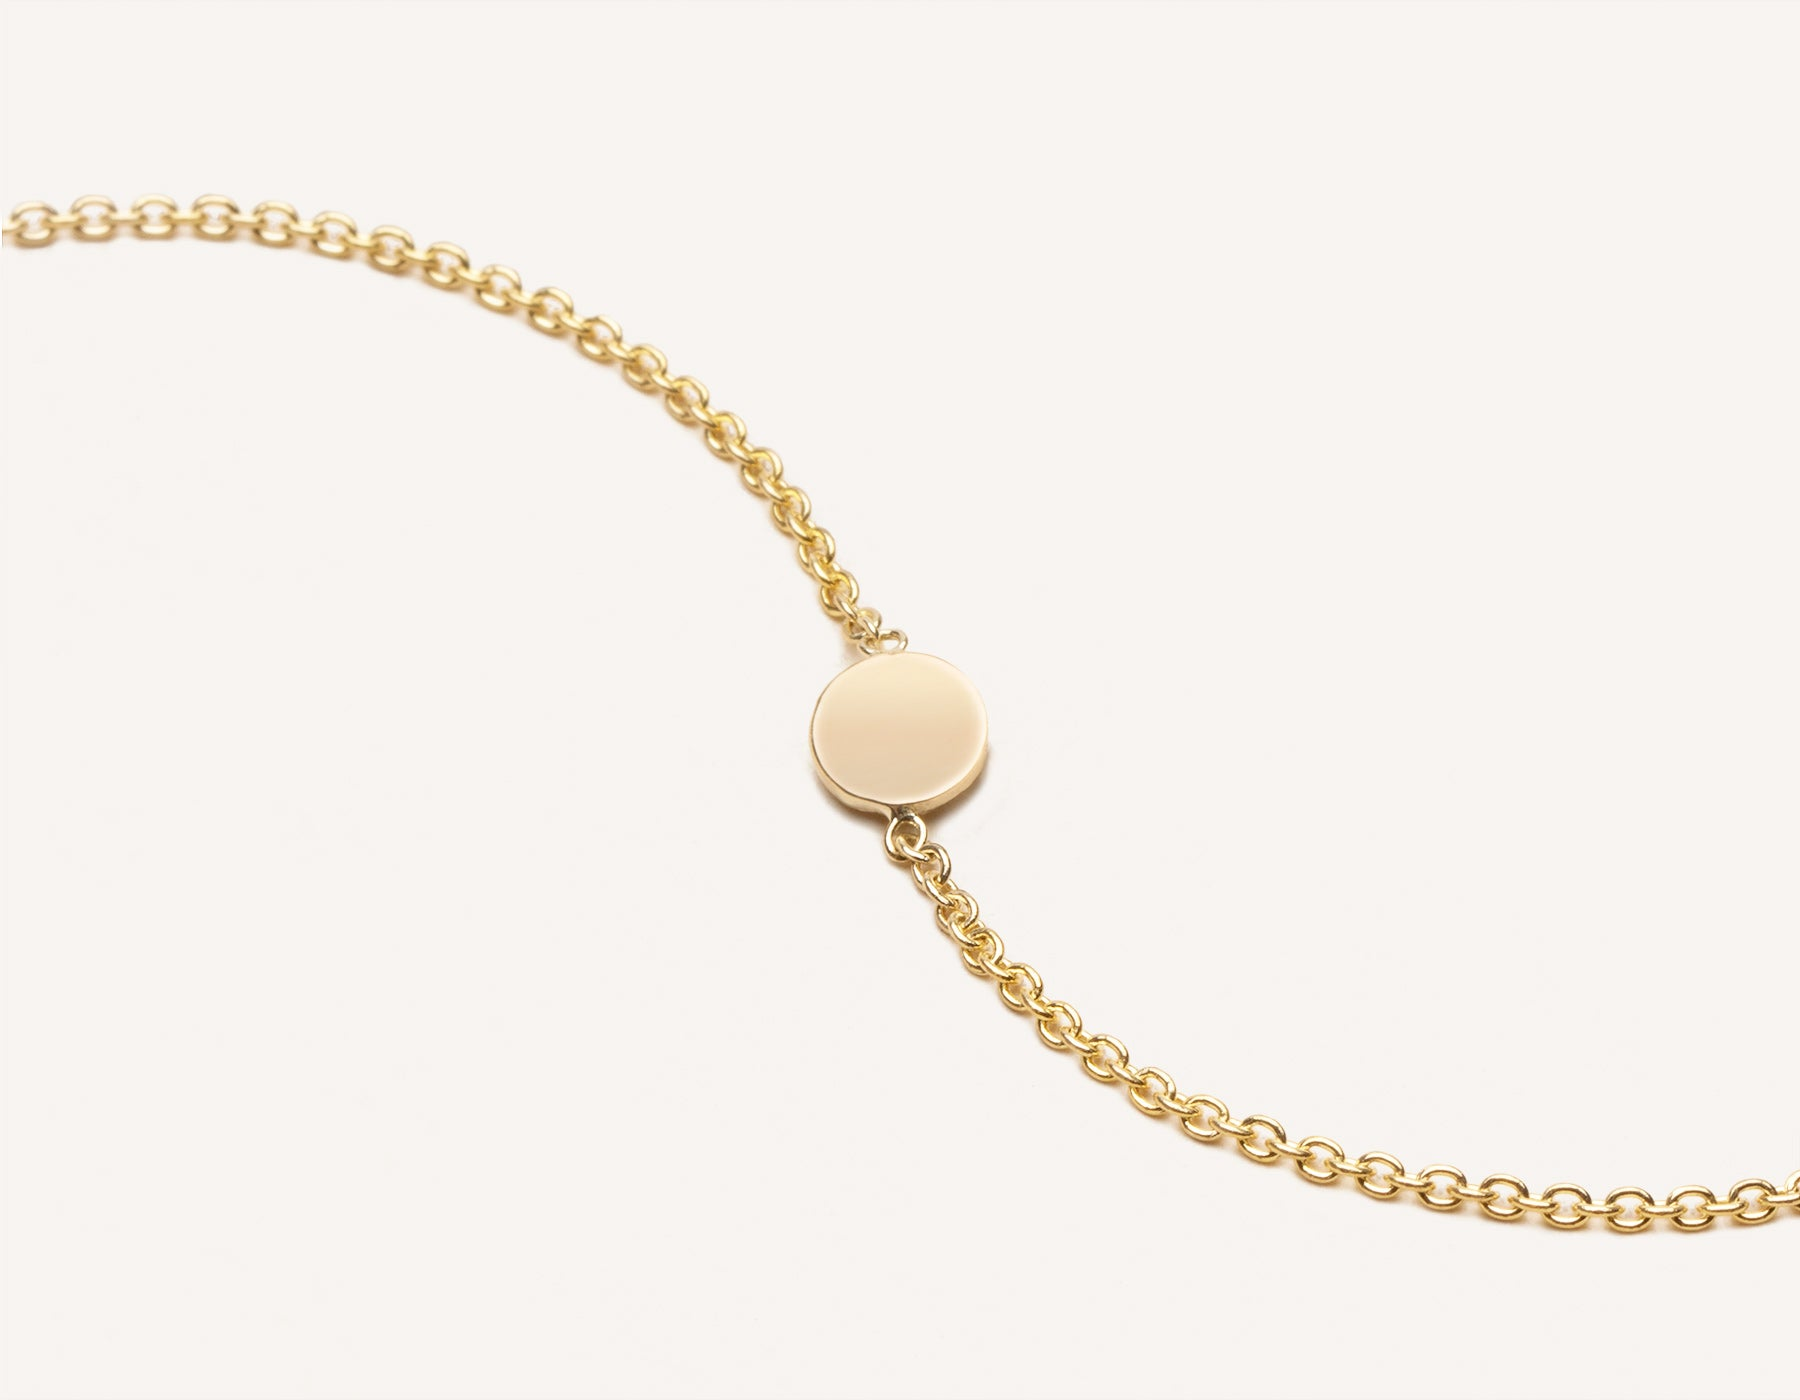 Customizable simple Initial Bracelet 14k solid gold round disk dainty chain Vrai and Oro, 14K Yellow Gold